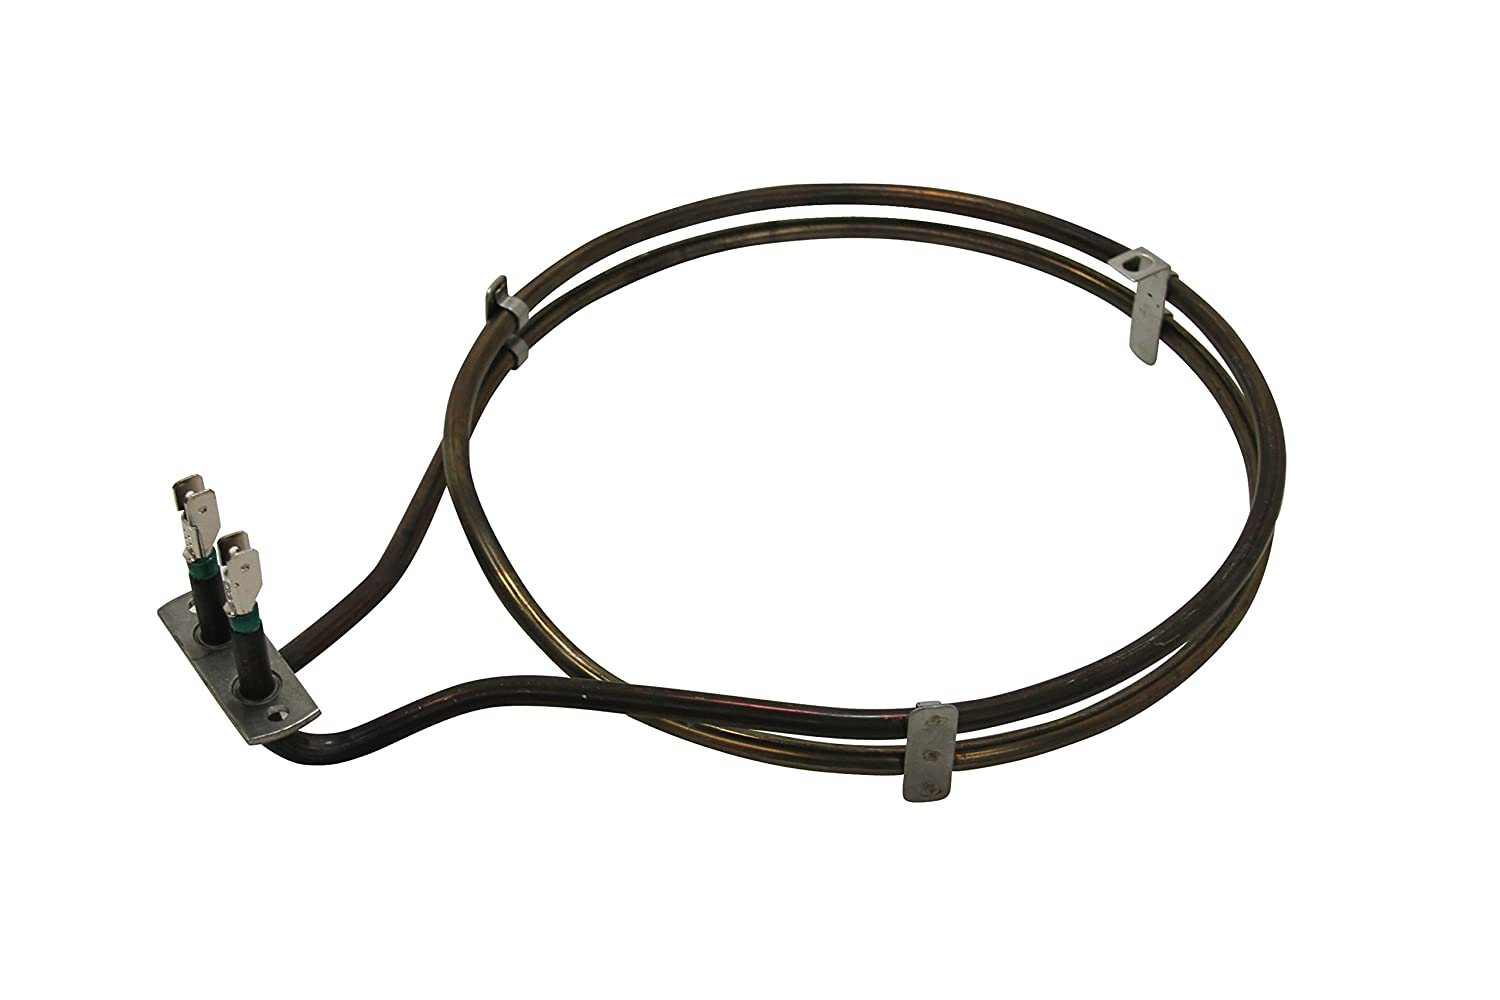 71lKqJGfNEL._SL1500_ neff fan oven cooker element 2300w eq2 499003 spares amazon co uk neff oven element wiring diagram at readyjetset.co